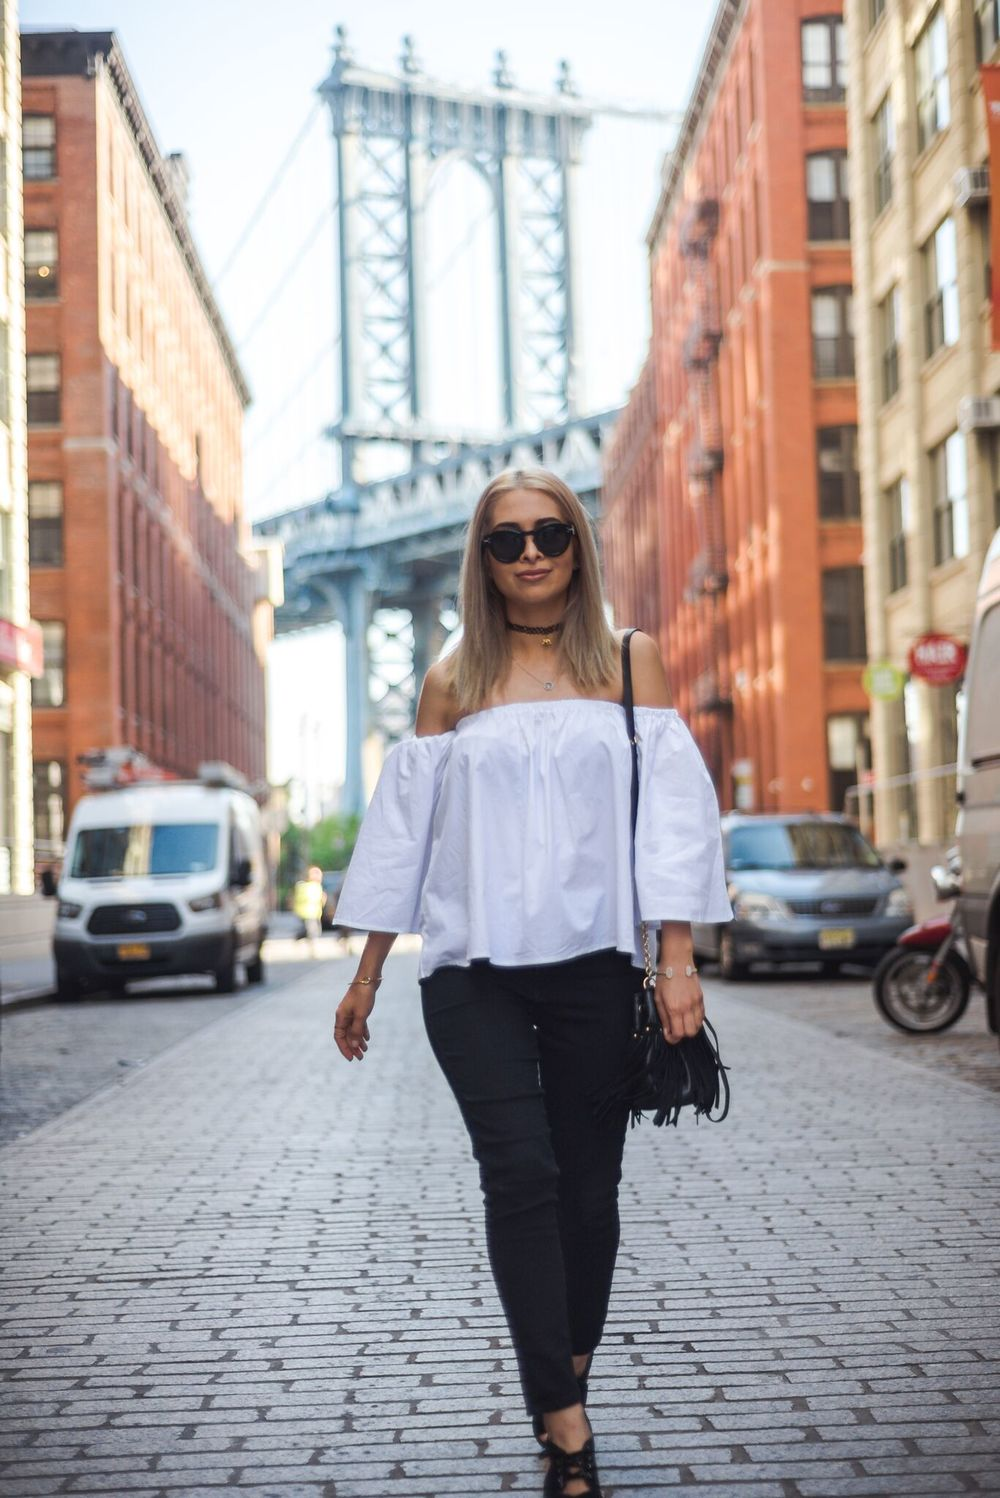 savvy javvy_nyc blogger_nyc fashion blogger_nyc street style_NYFW Streetstyle_brooklyn_dumbo_what to wear in NYC_icy blonde hair_kim kardashian hair_olsen twins hair_lob_celine sunglasses_over the shoulder top_over the shoulder shirt_what to do in dumbo_nyc travel blogger_what to do in NYC